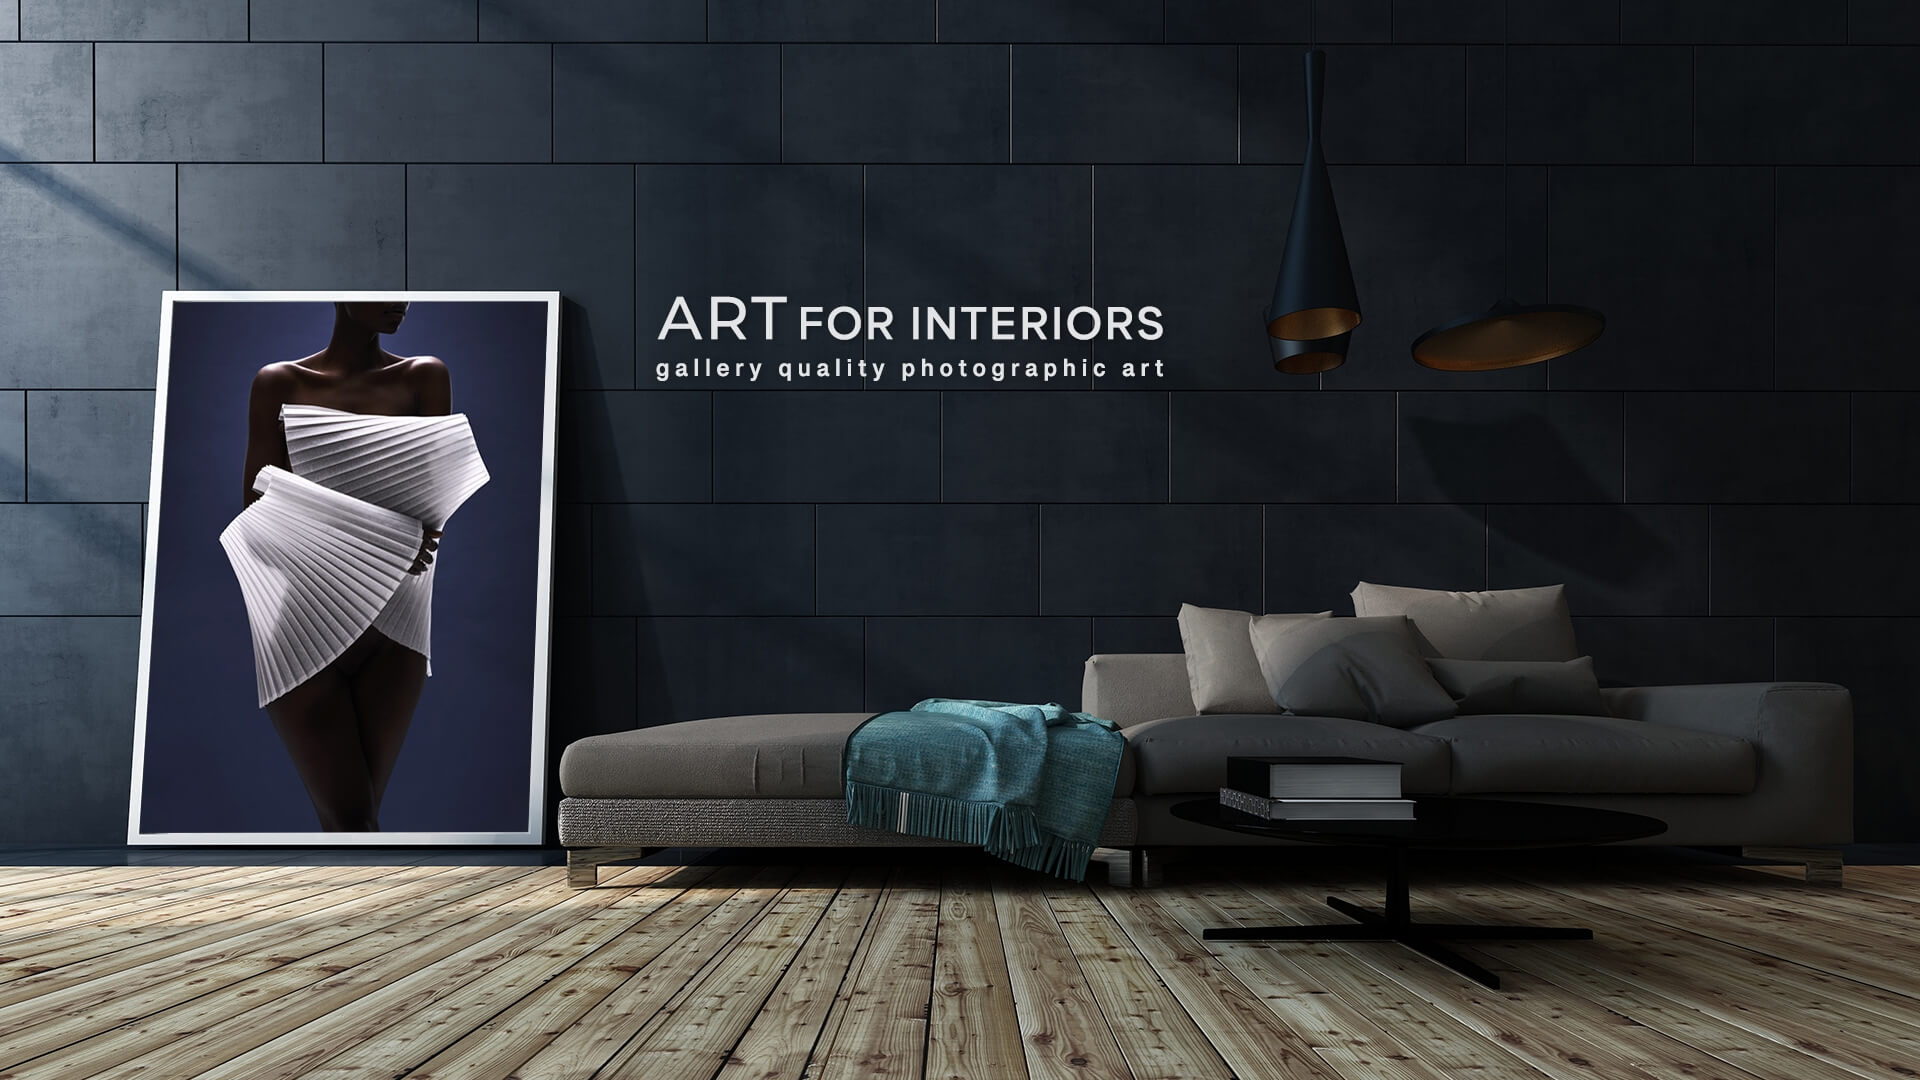 Art for interiors - gallery quality photographic art